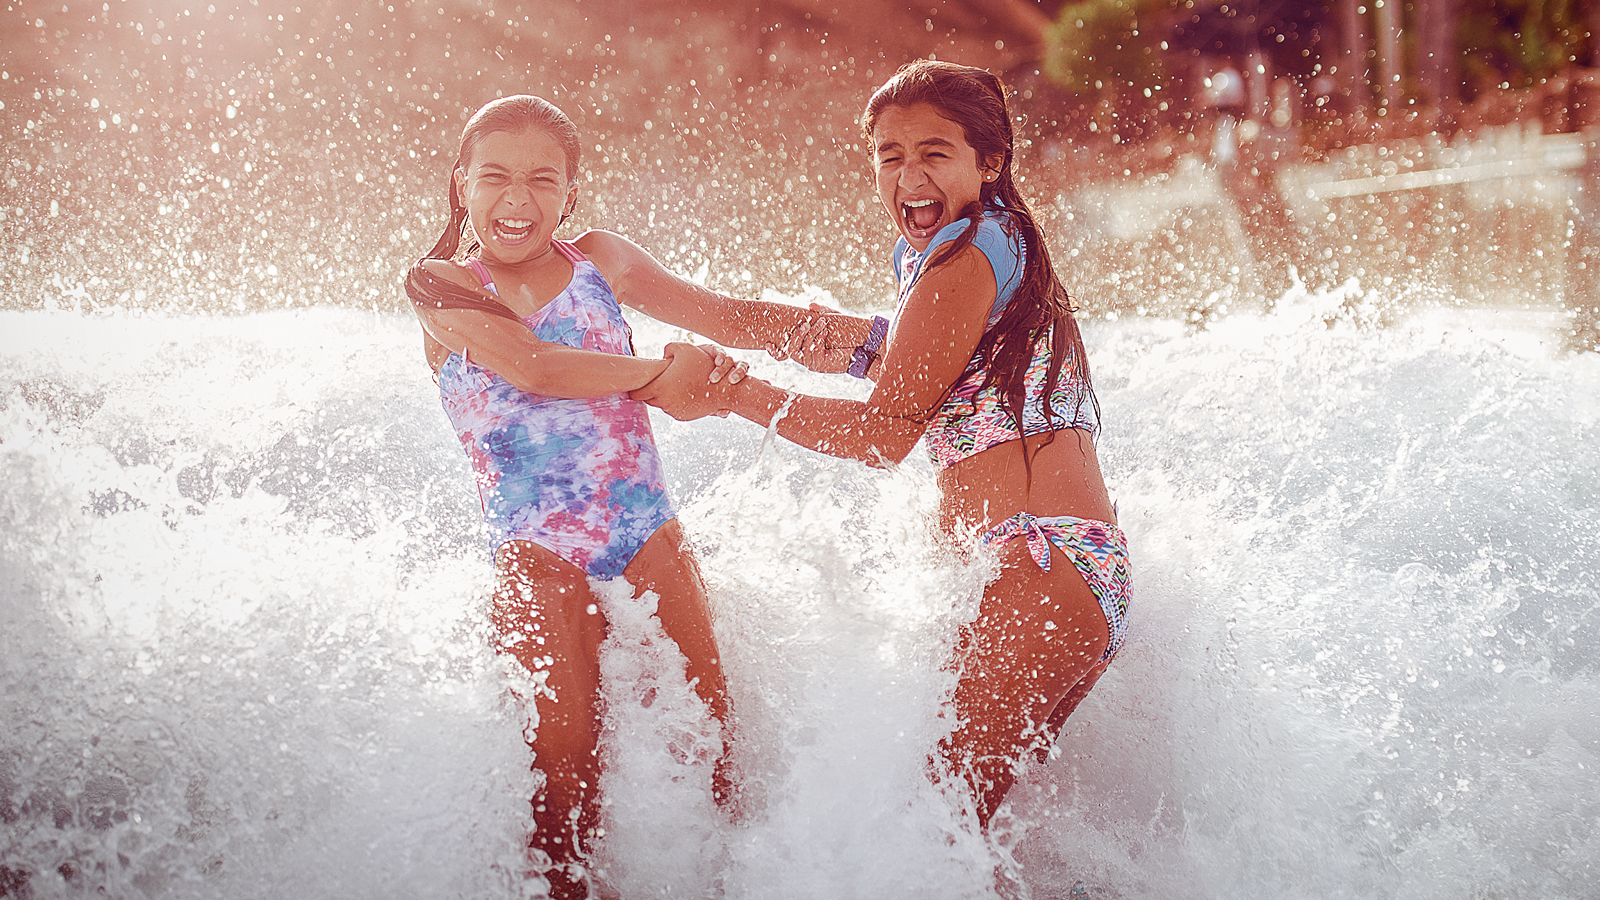 Two girls play in the shallow end of a wave pool